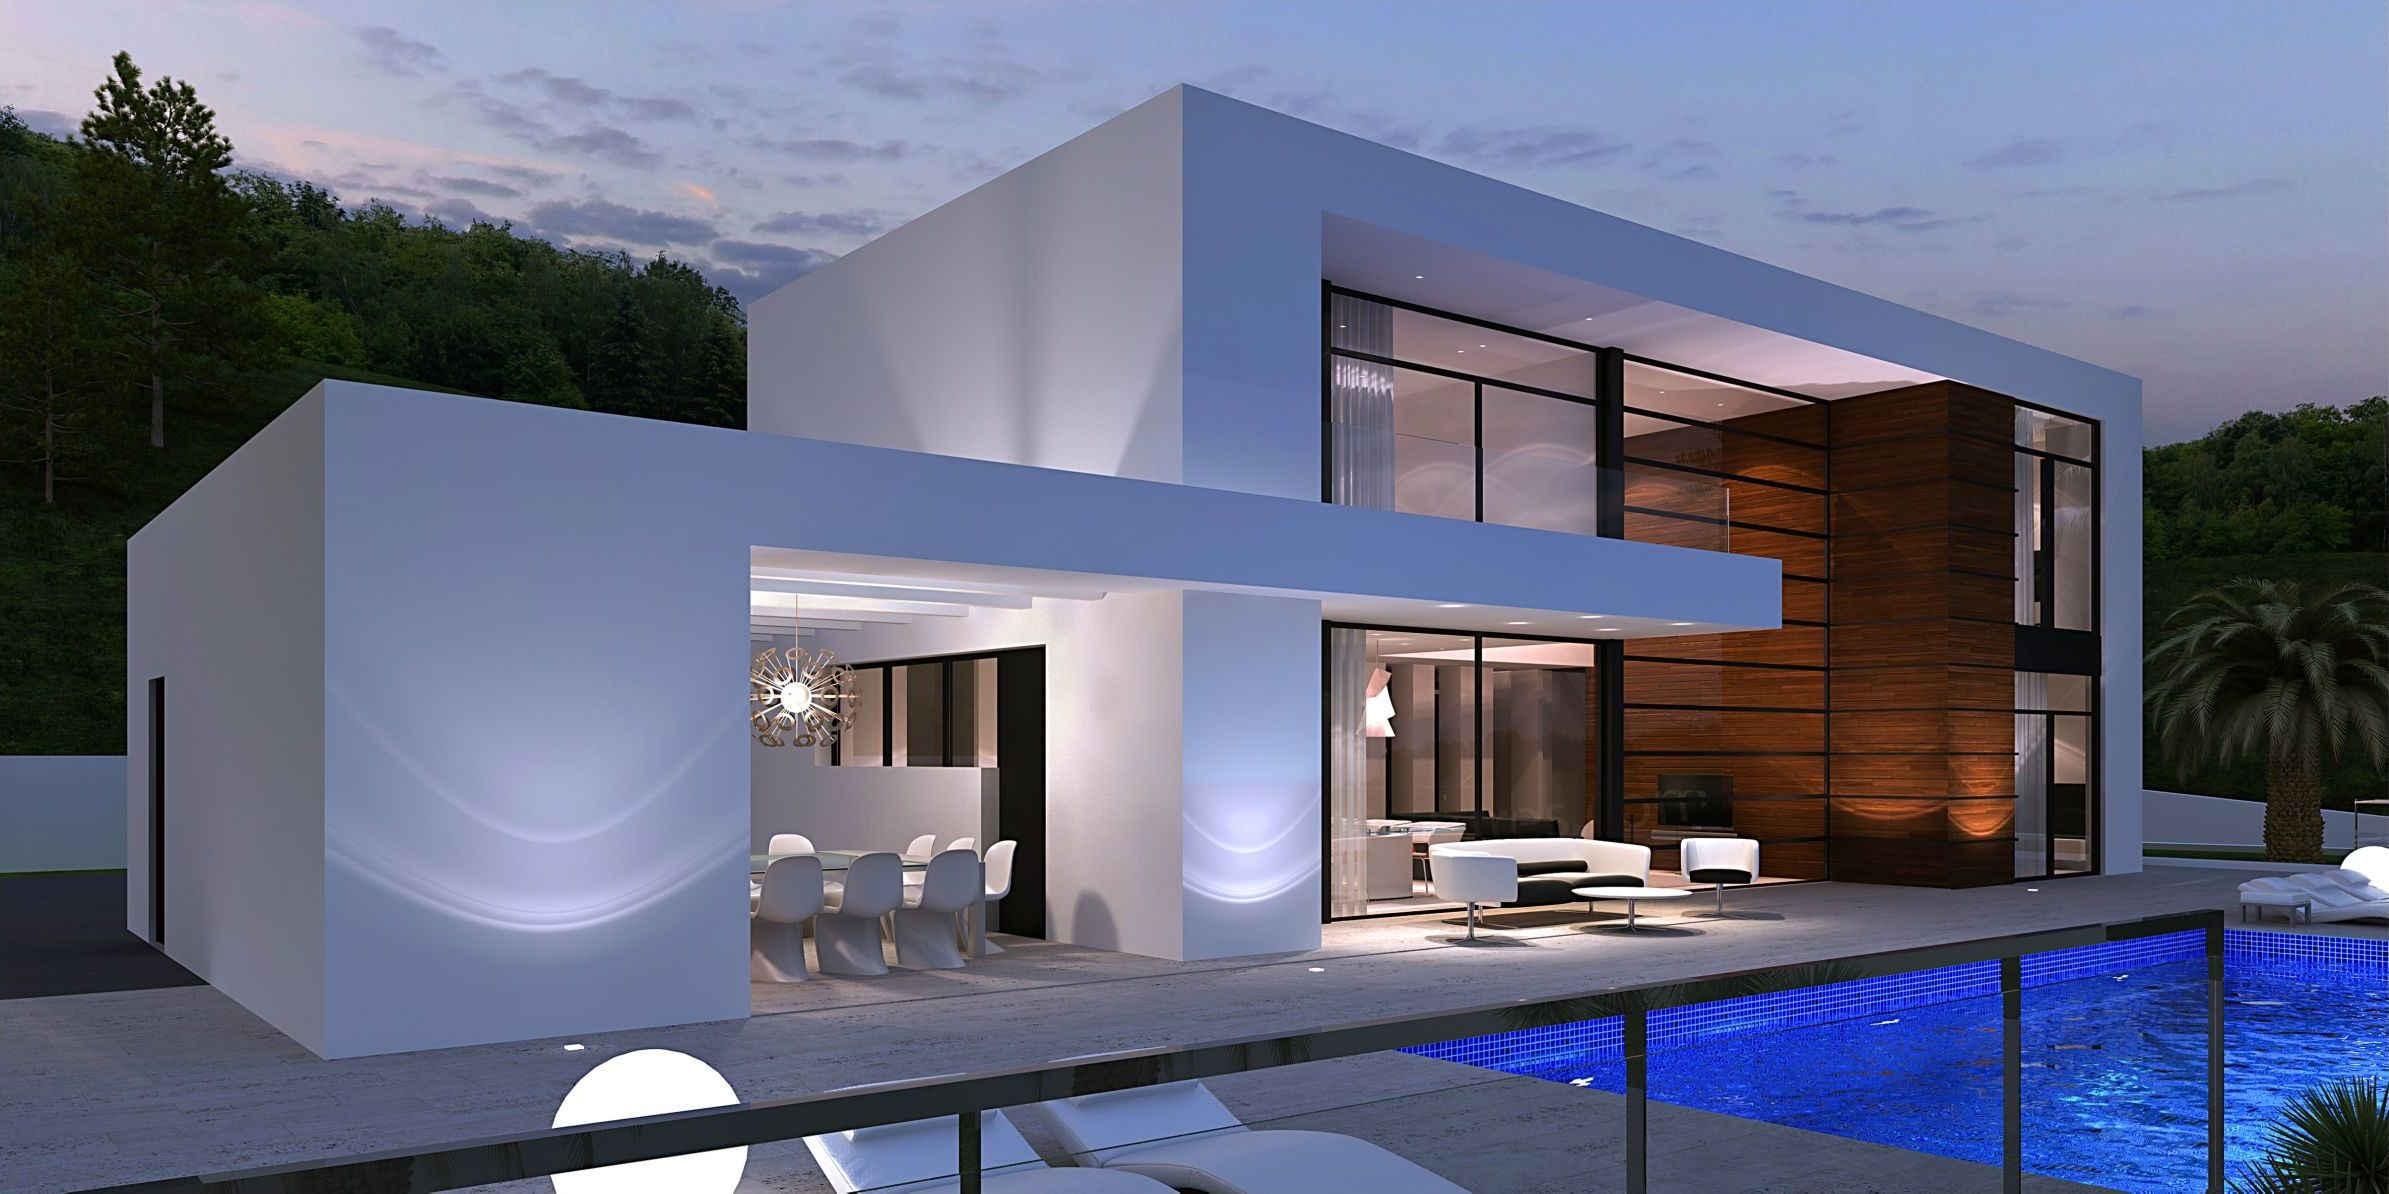 Beautiful new building design villa model catalina to be built on  plot of own choice the costa blanca north is characterised by clean also rh pinterest